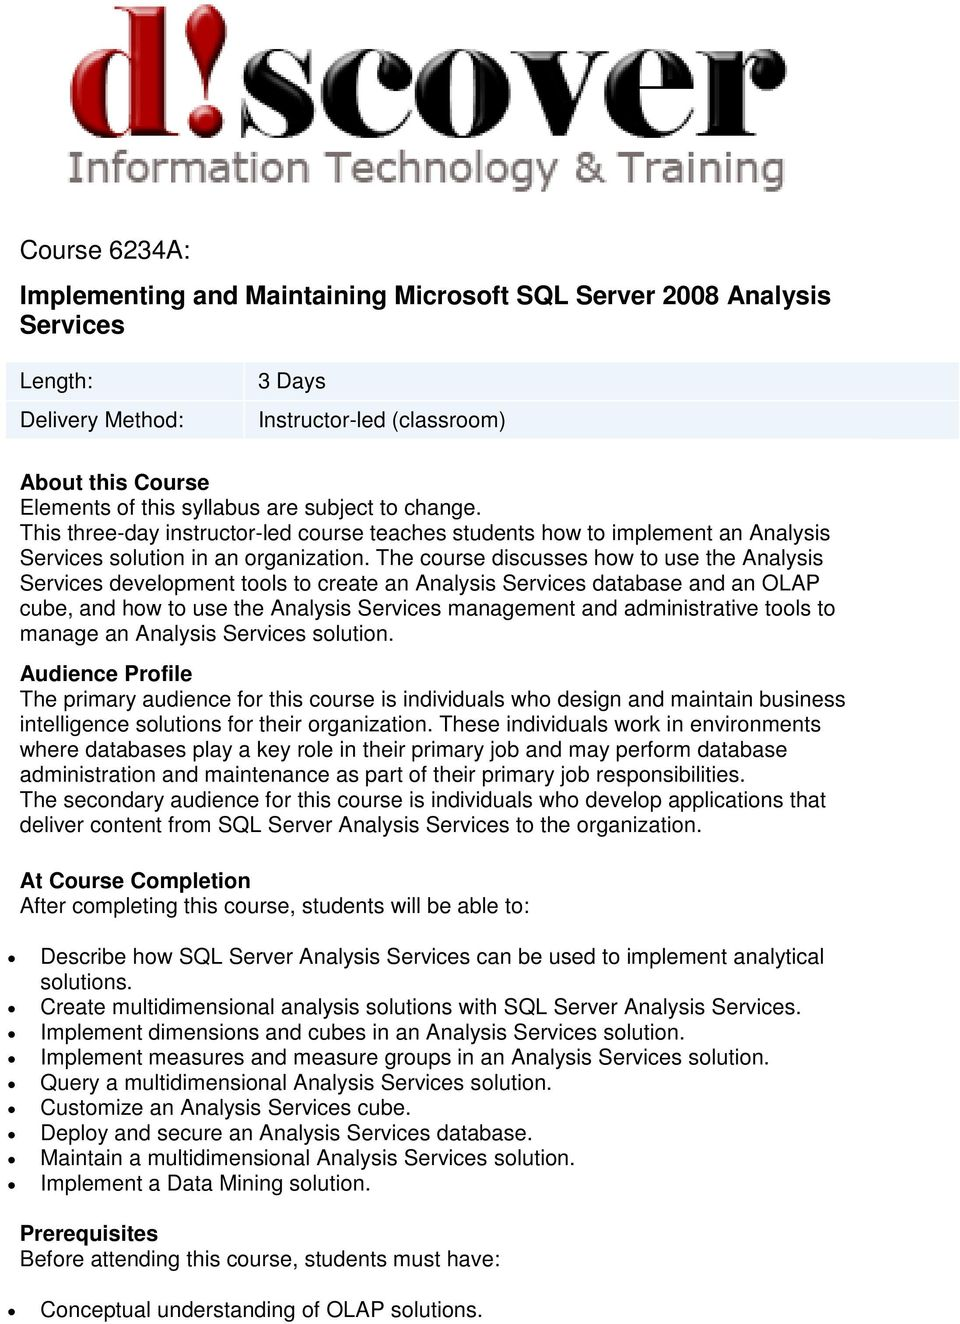 The course discusses how to use the Analysis Services development tools to create an Analysis Services database and an OLAP cube, and how to use the Analysis Services management and administrative